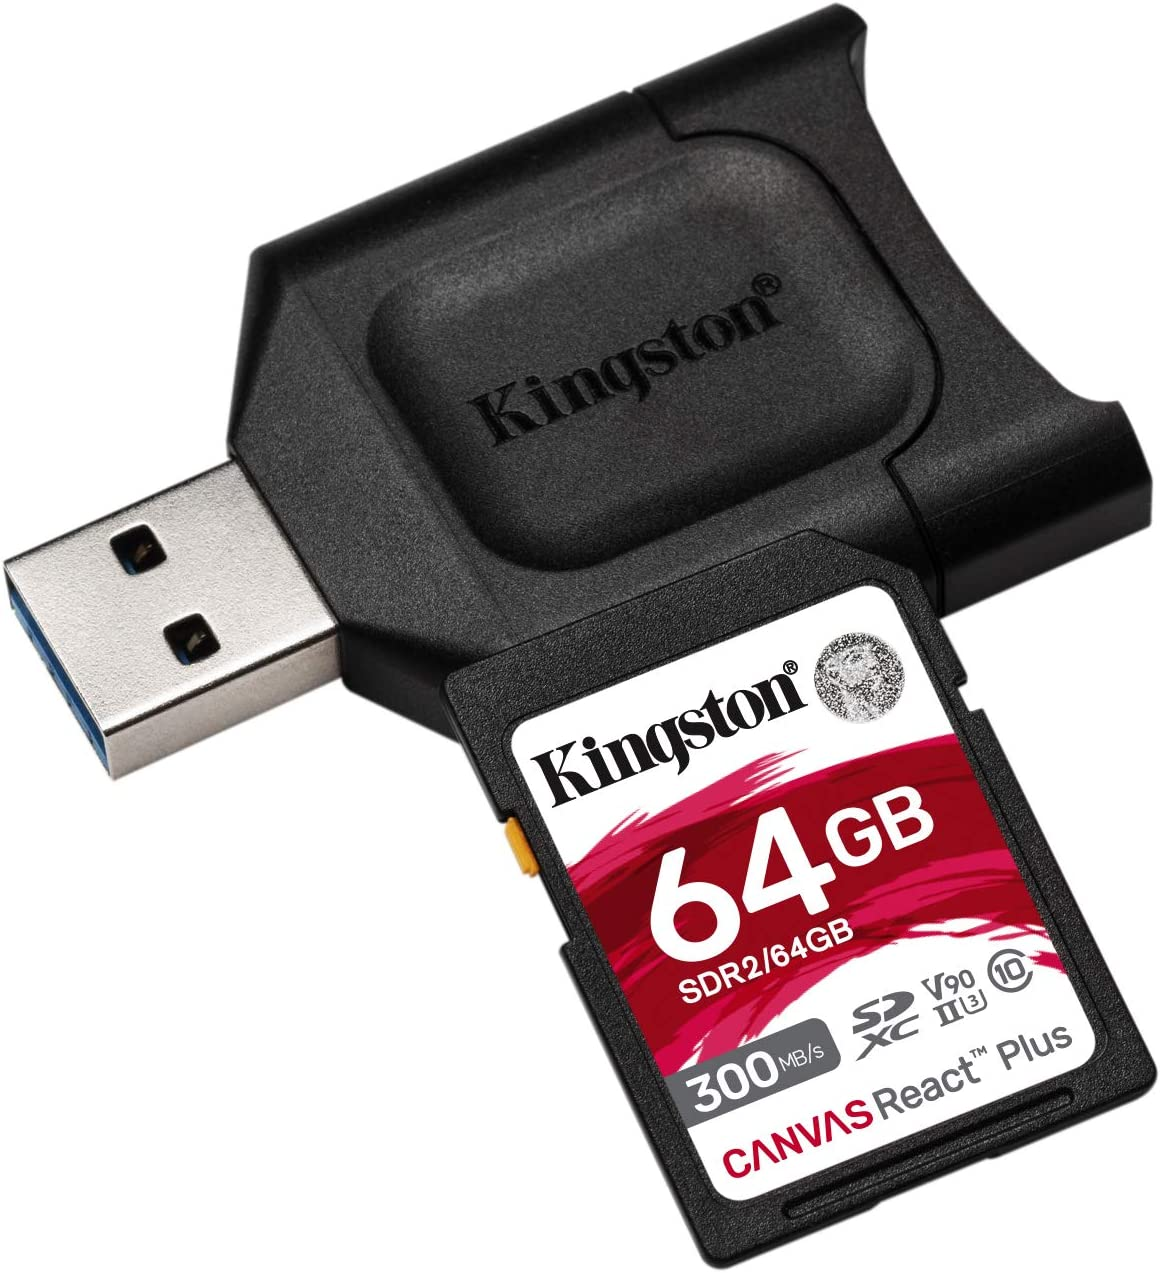 Kingston Industrial Grade 8GB Xolo LT900 MicroSDHC Card Verified by SanFlash. 90MBs Works for Kingston